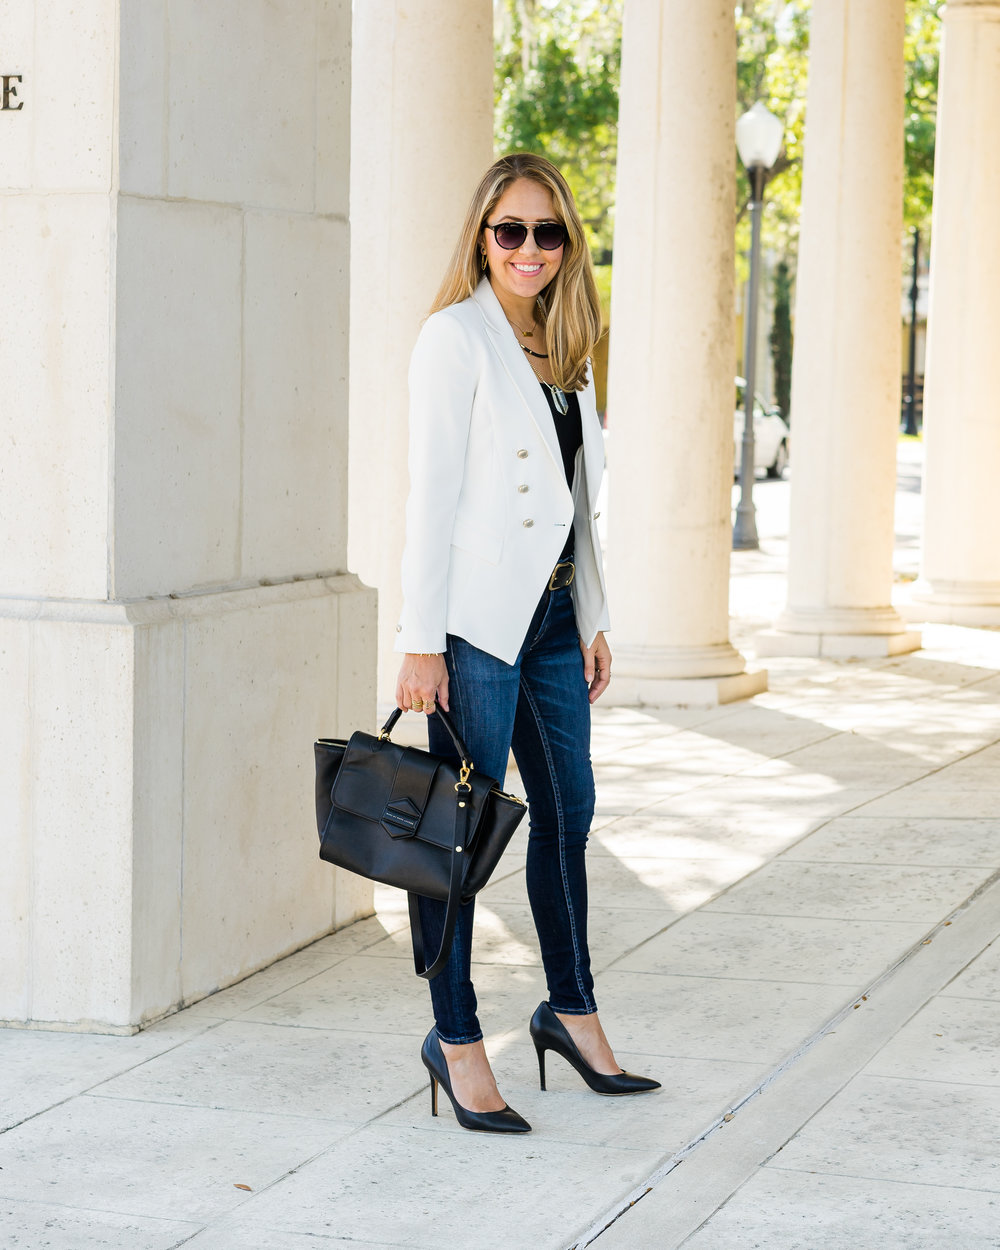 White blazer, black top, layered necklaces